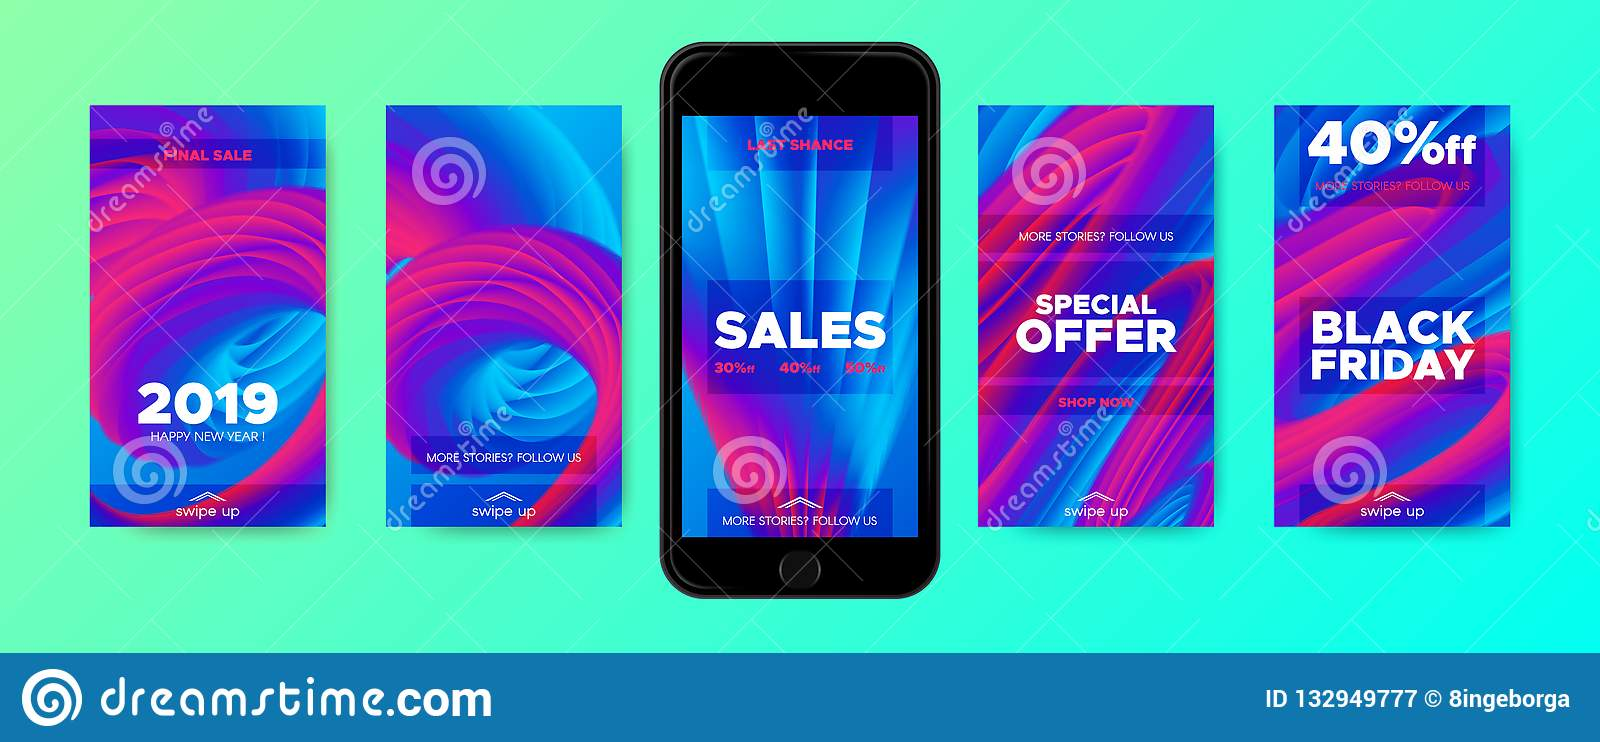 Phone Wallpaper Templates With 3d Abstract Shape Stock